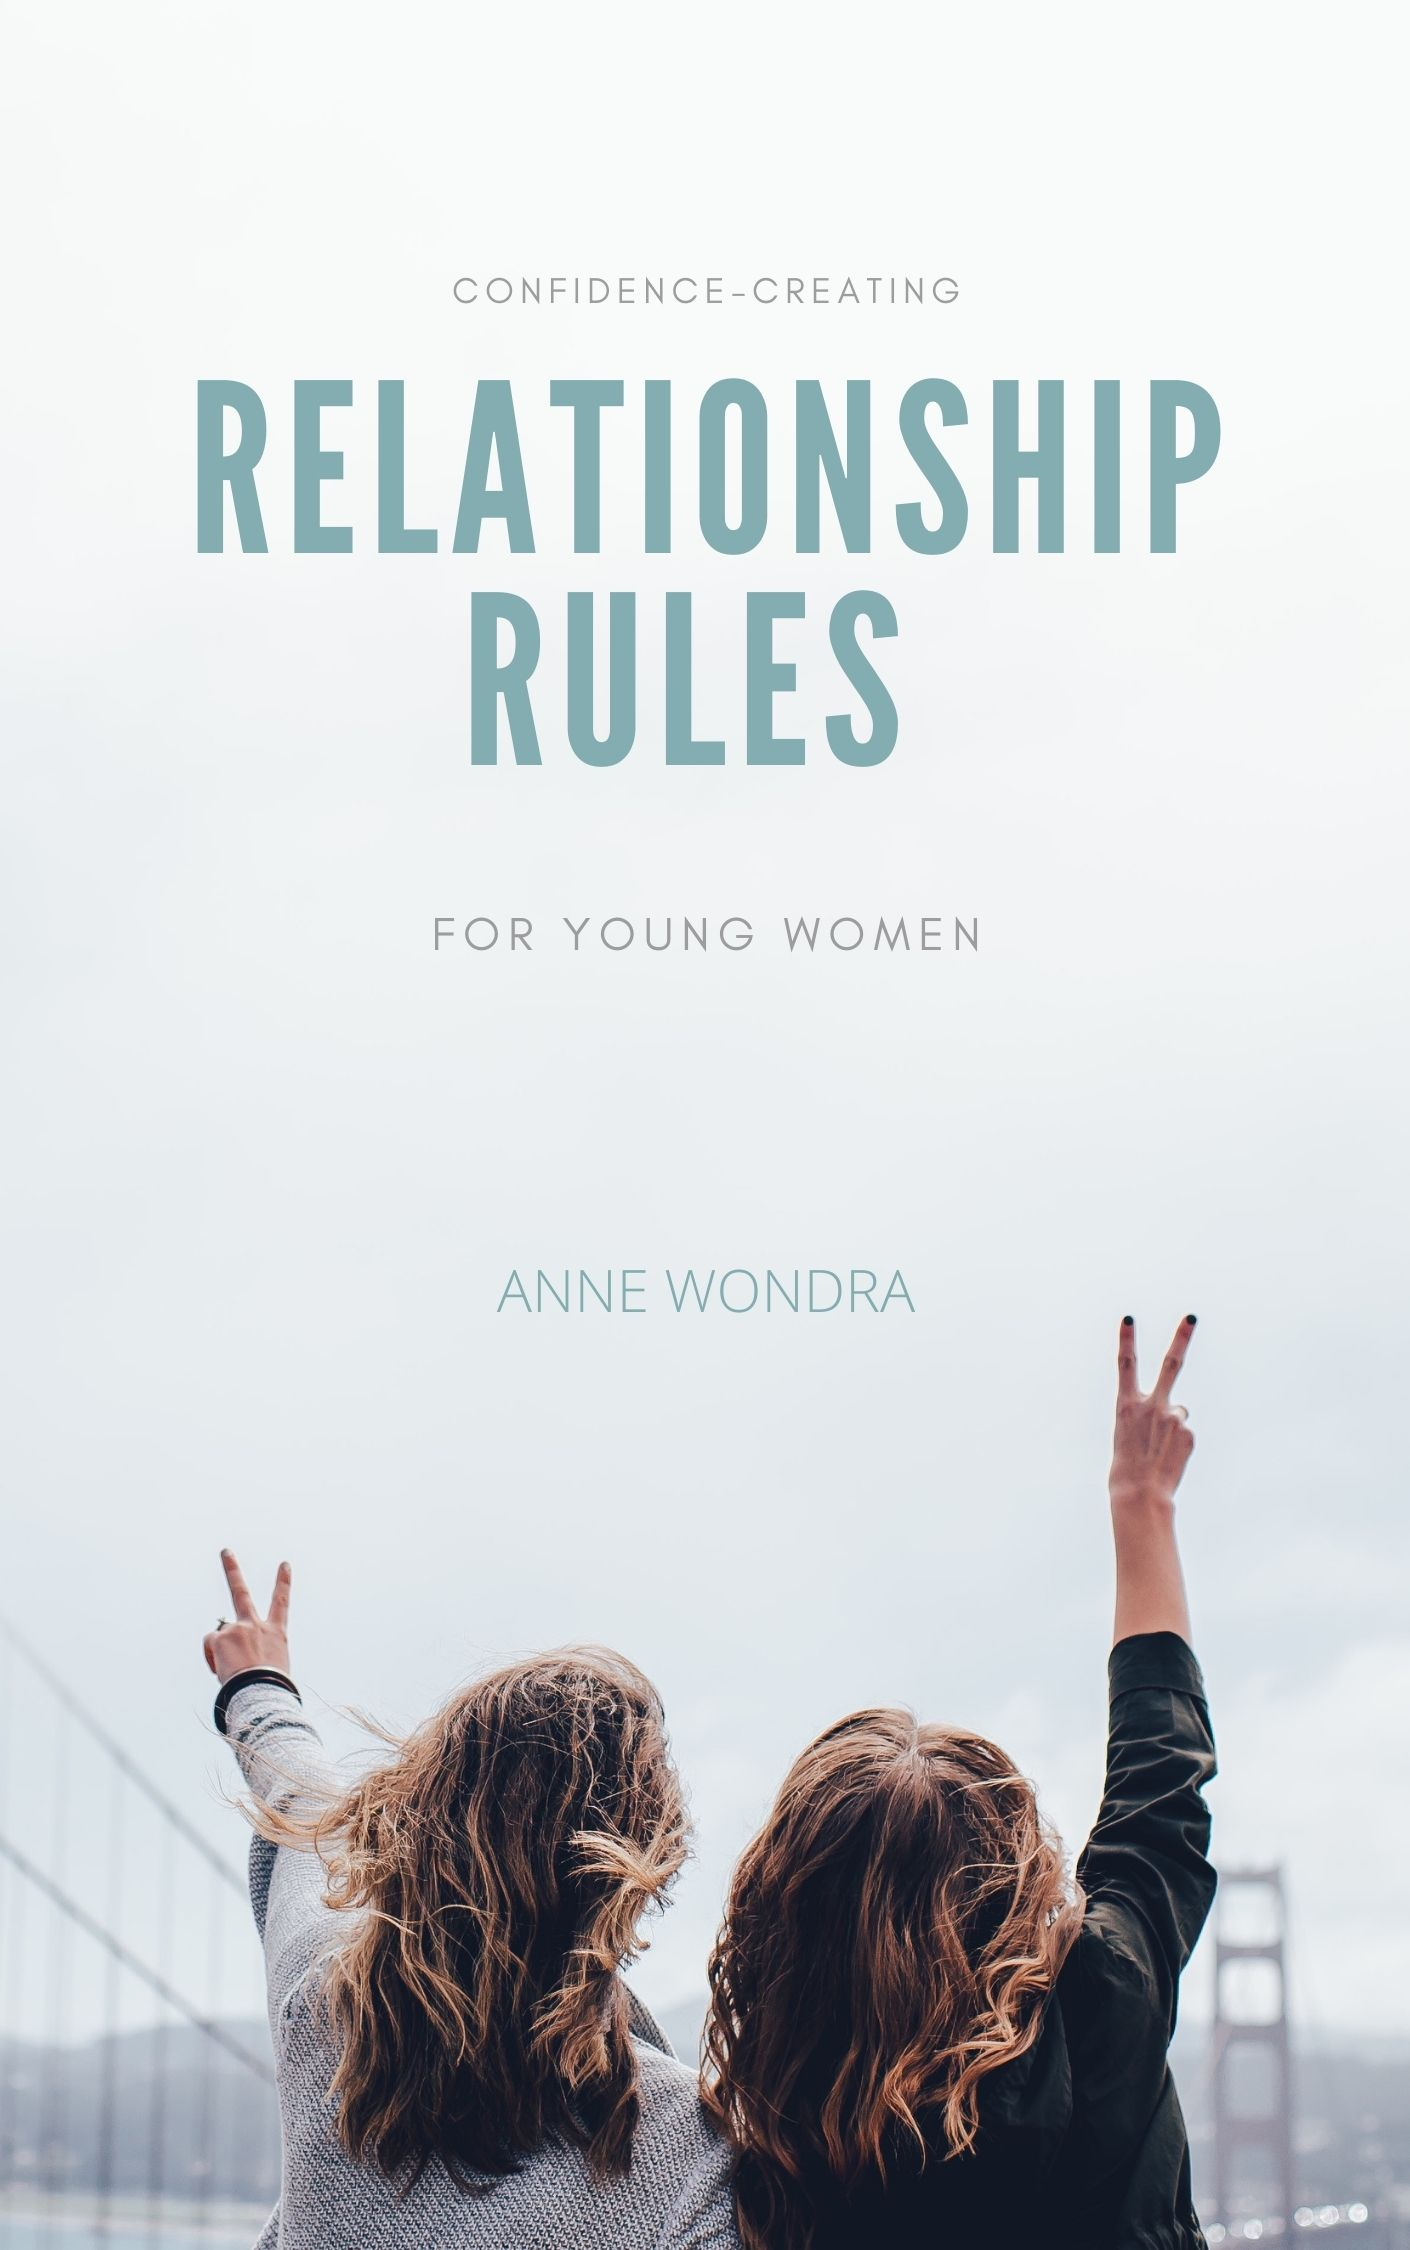 Relationship Rules: Confidence creating for young women